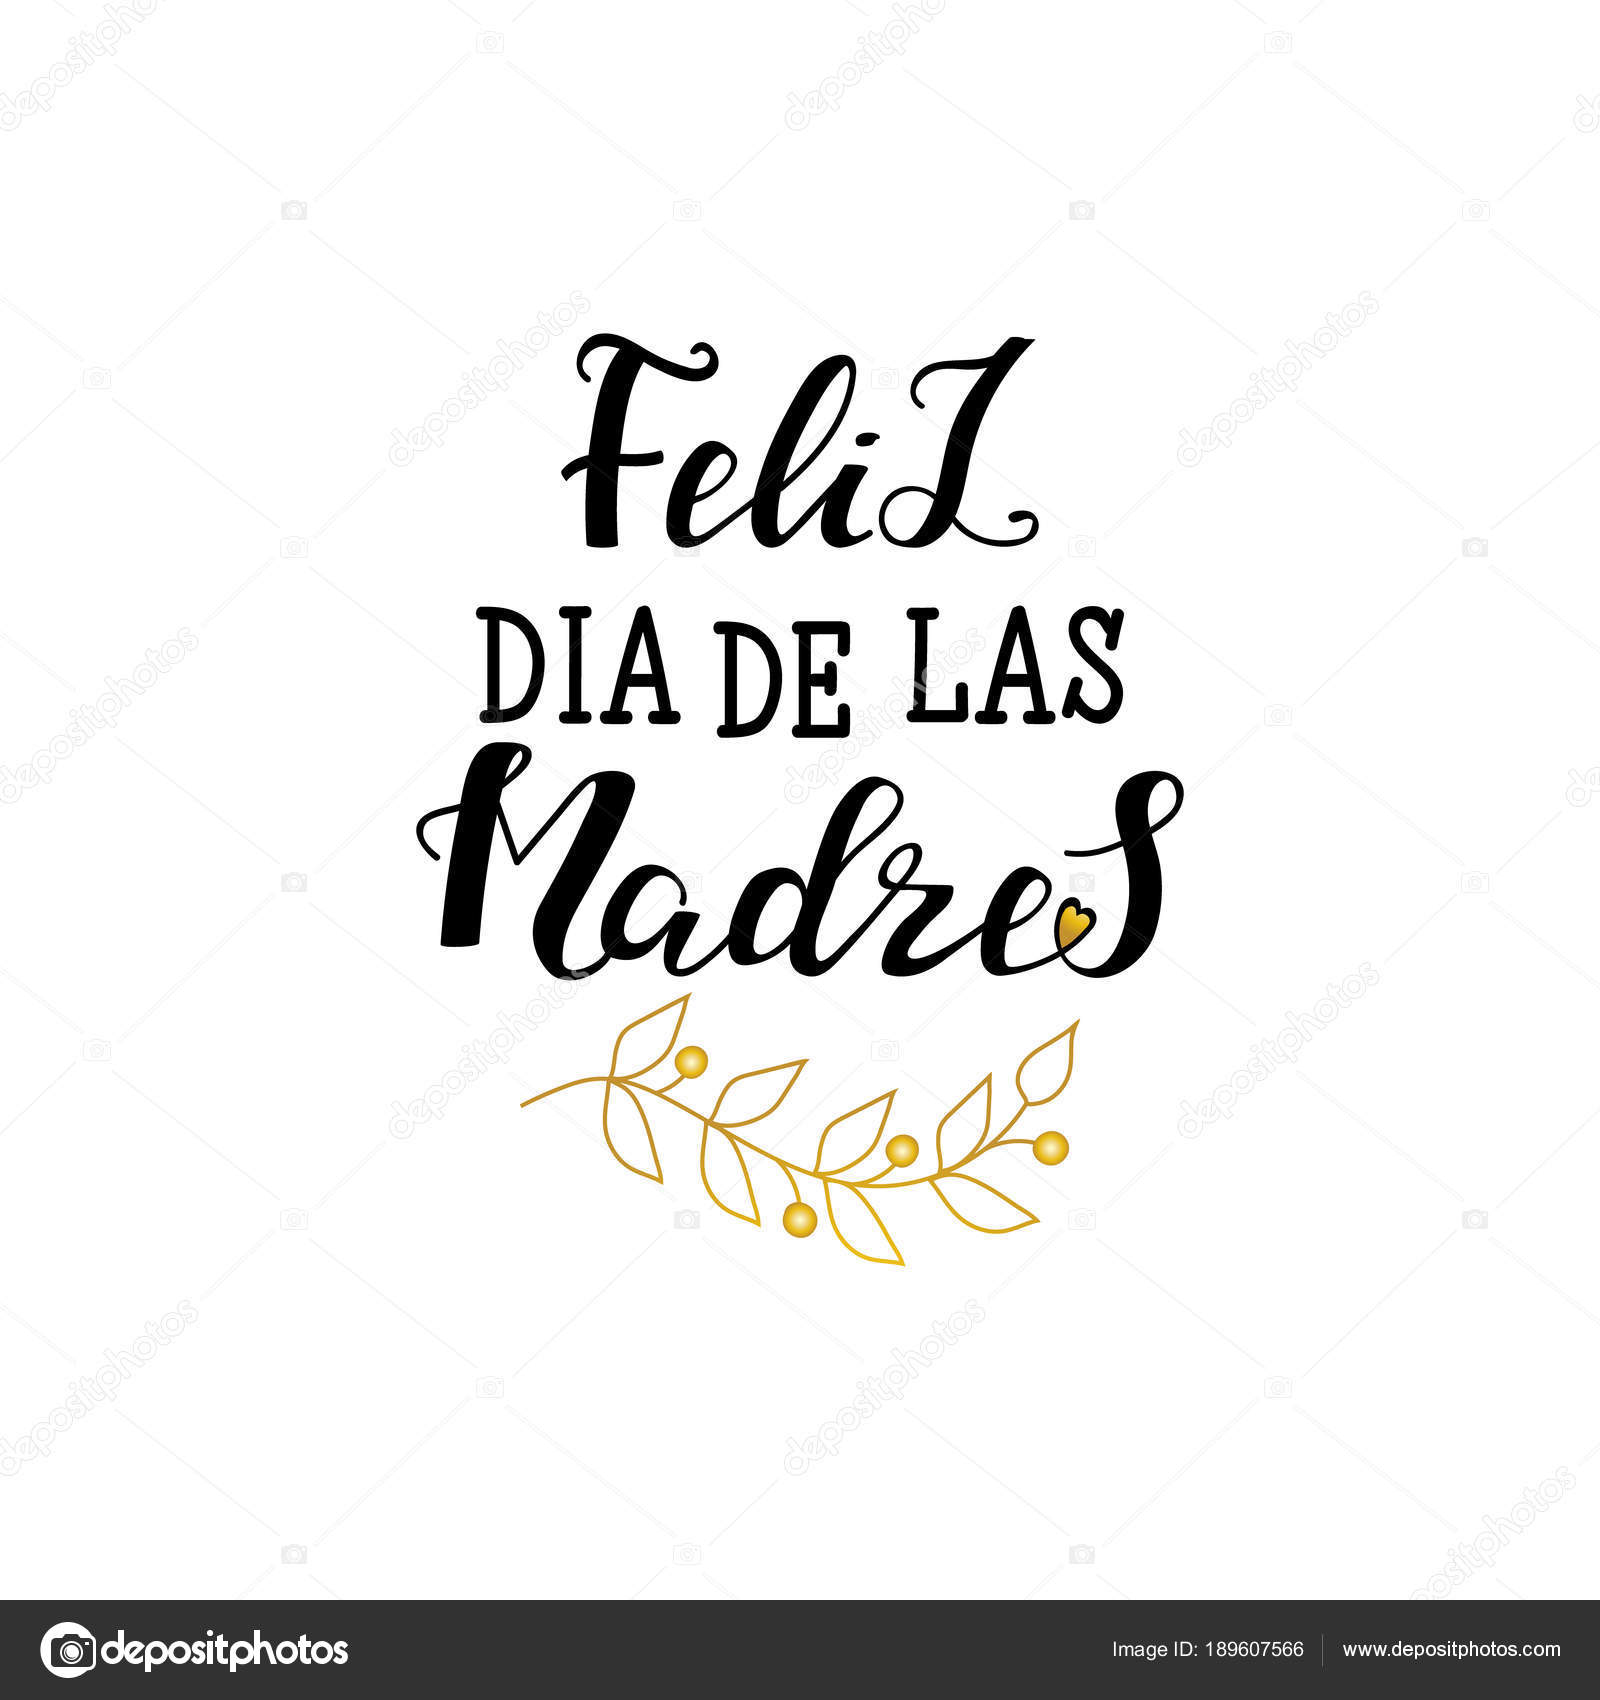 Feliz Dia De La Madre Spanish Translation Of The Calligraphic Inscription Happy Mothers Day Lettering Illustration For Greeting Card Festive Poster Etc Vector Image By Pidzam4e Ukr Net Vector Stock 189607566